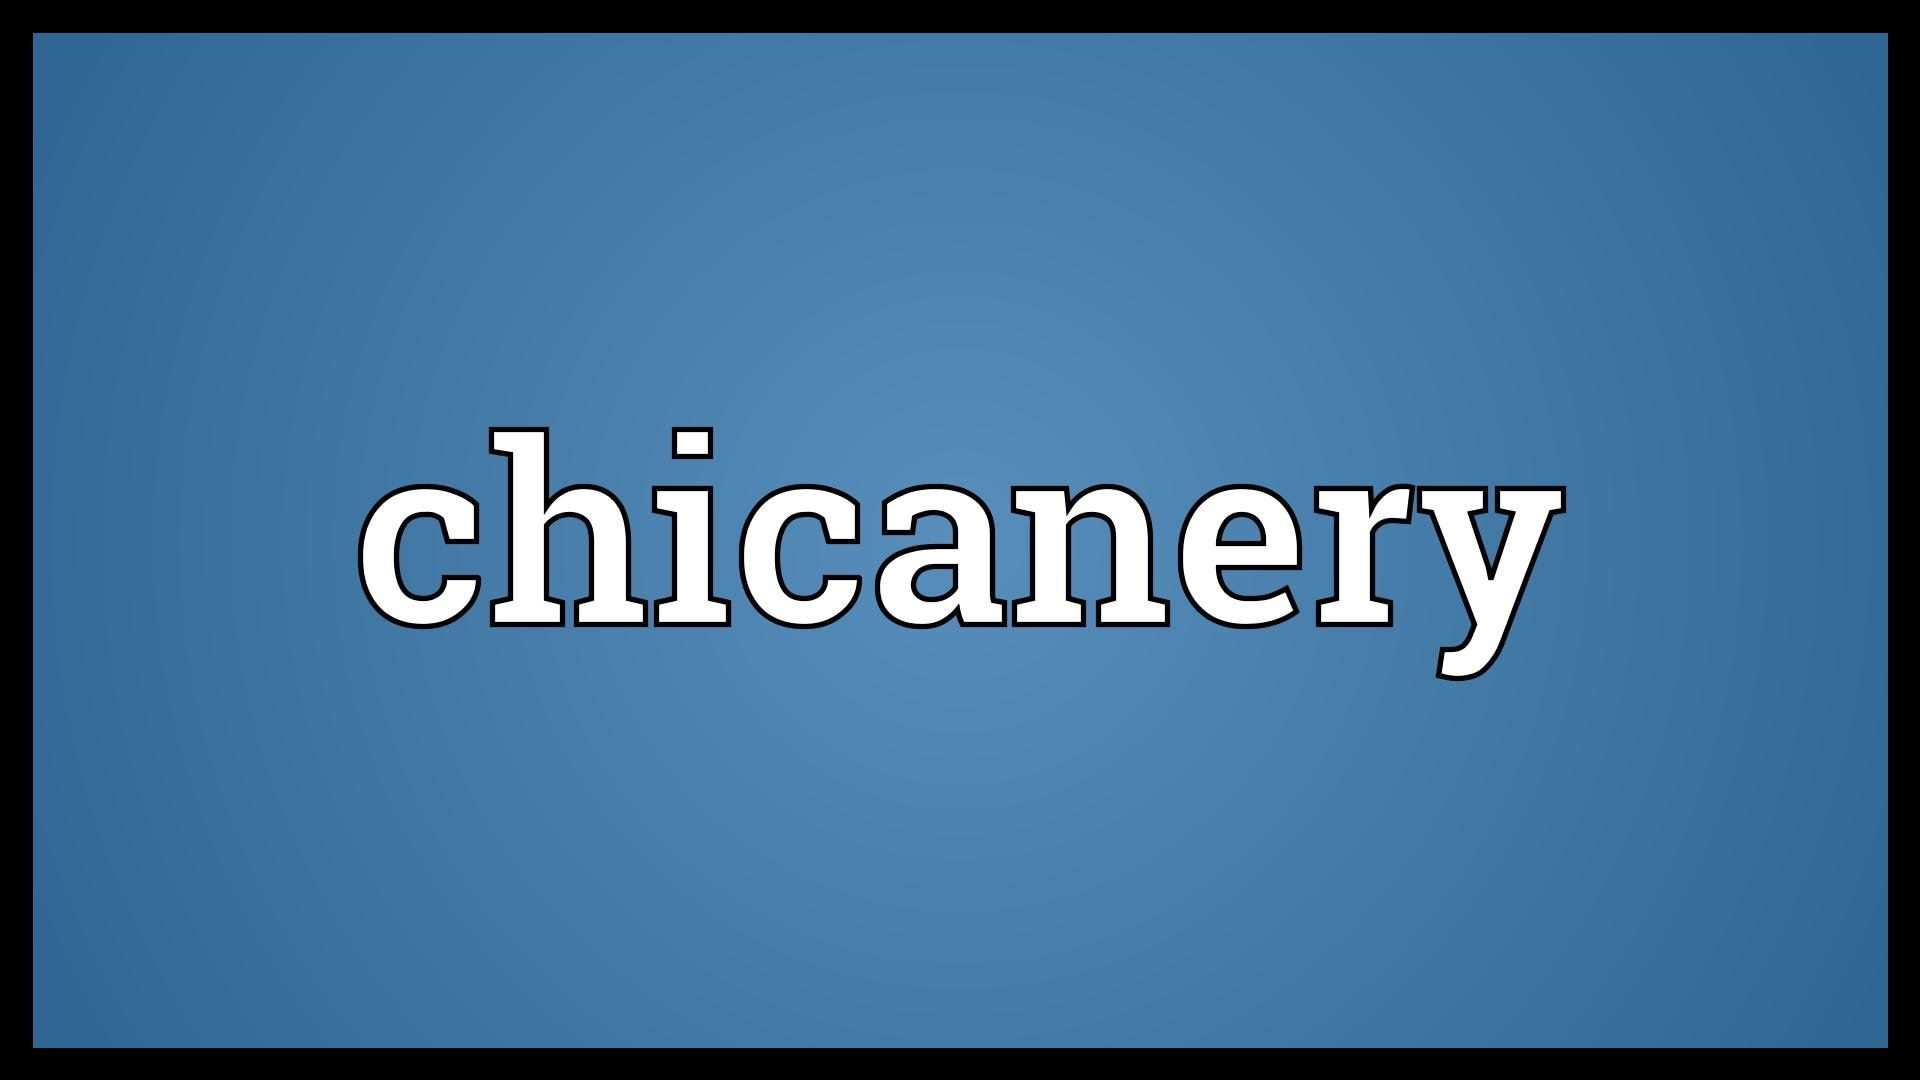 Chicanery Meaning Meant to be, Words, Youtube